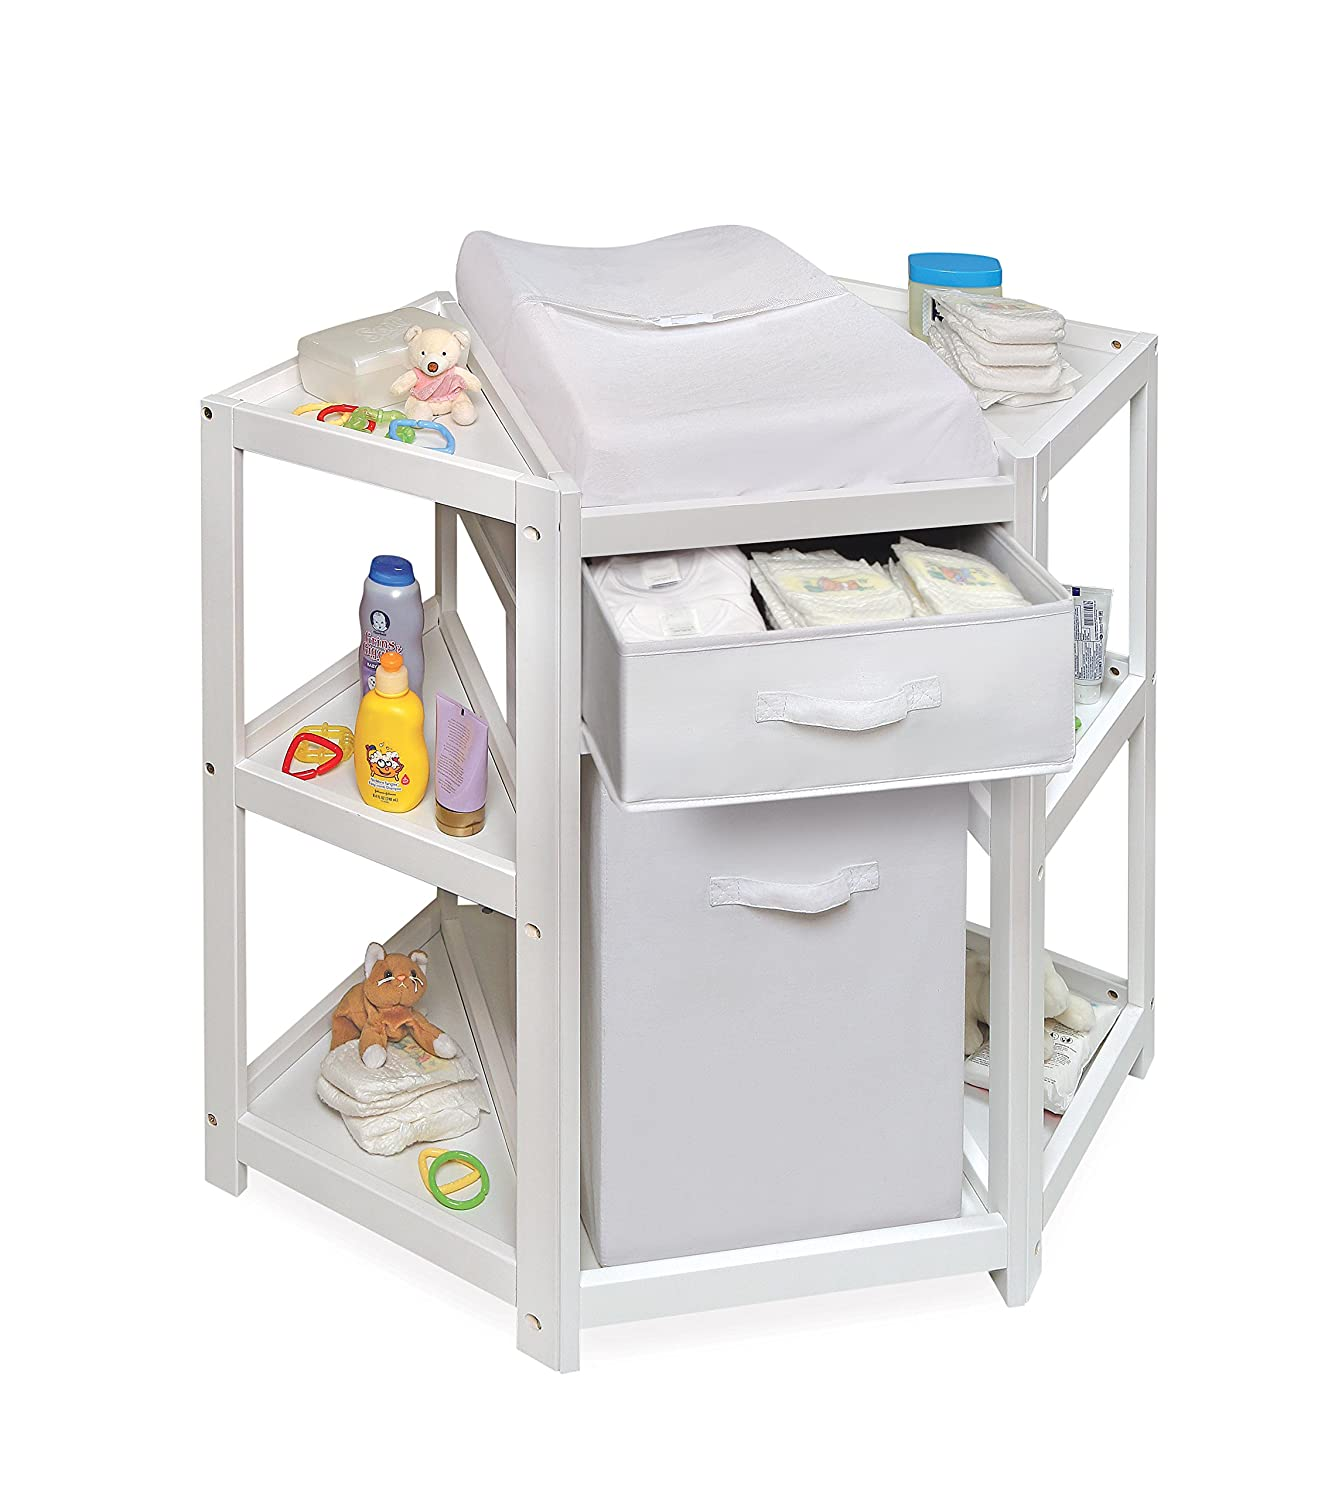 Elegant Amazon.com : Badger Basket Diaper Corner Baby Changing Table With  Hamper/Basket, White : Baby